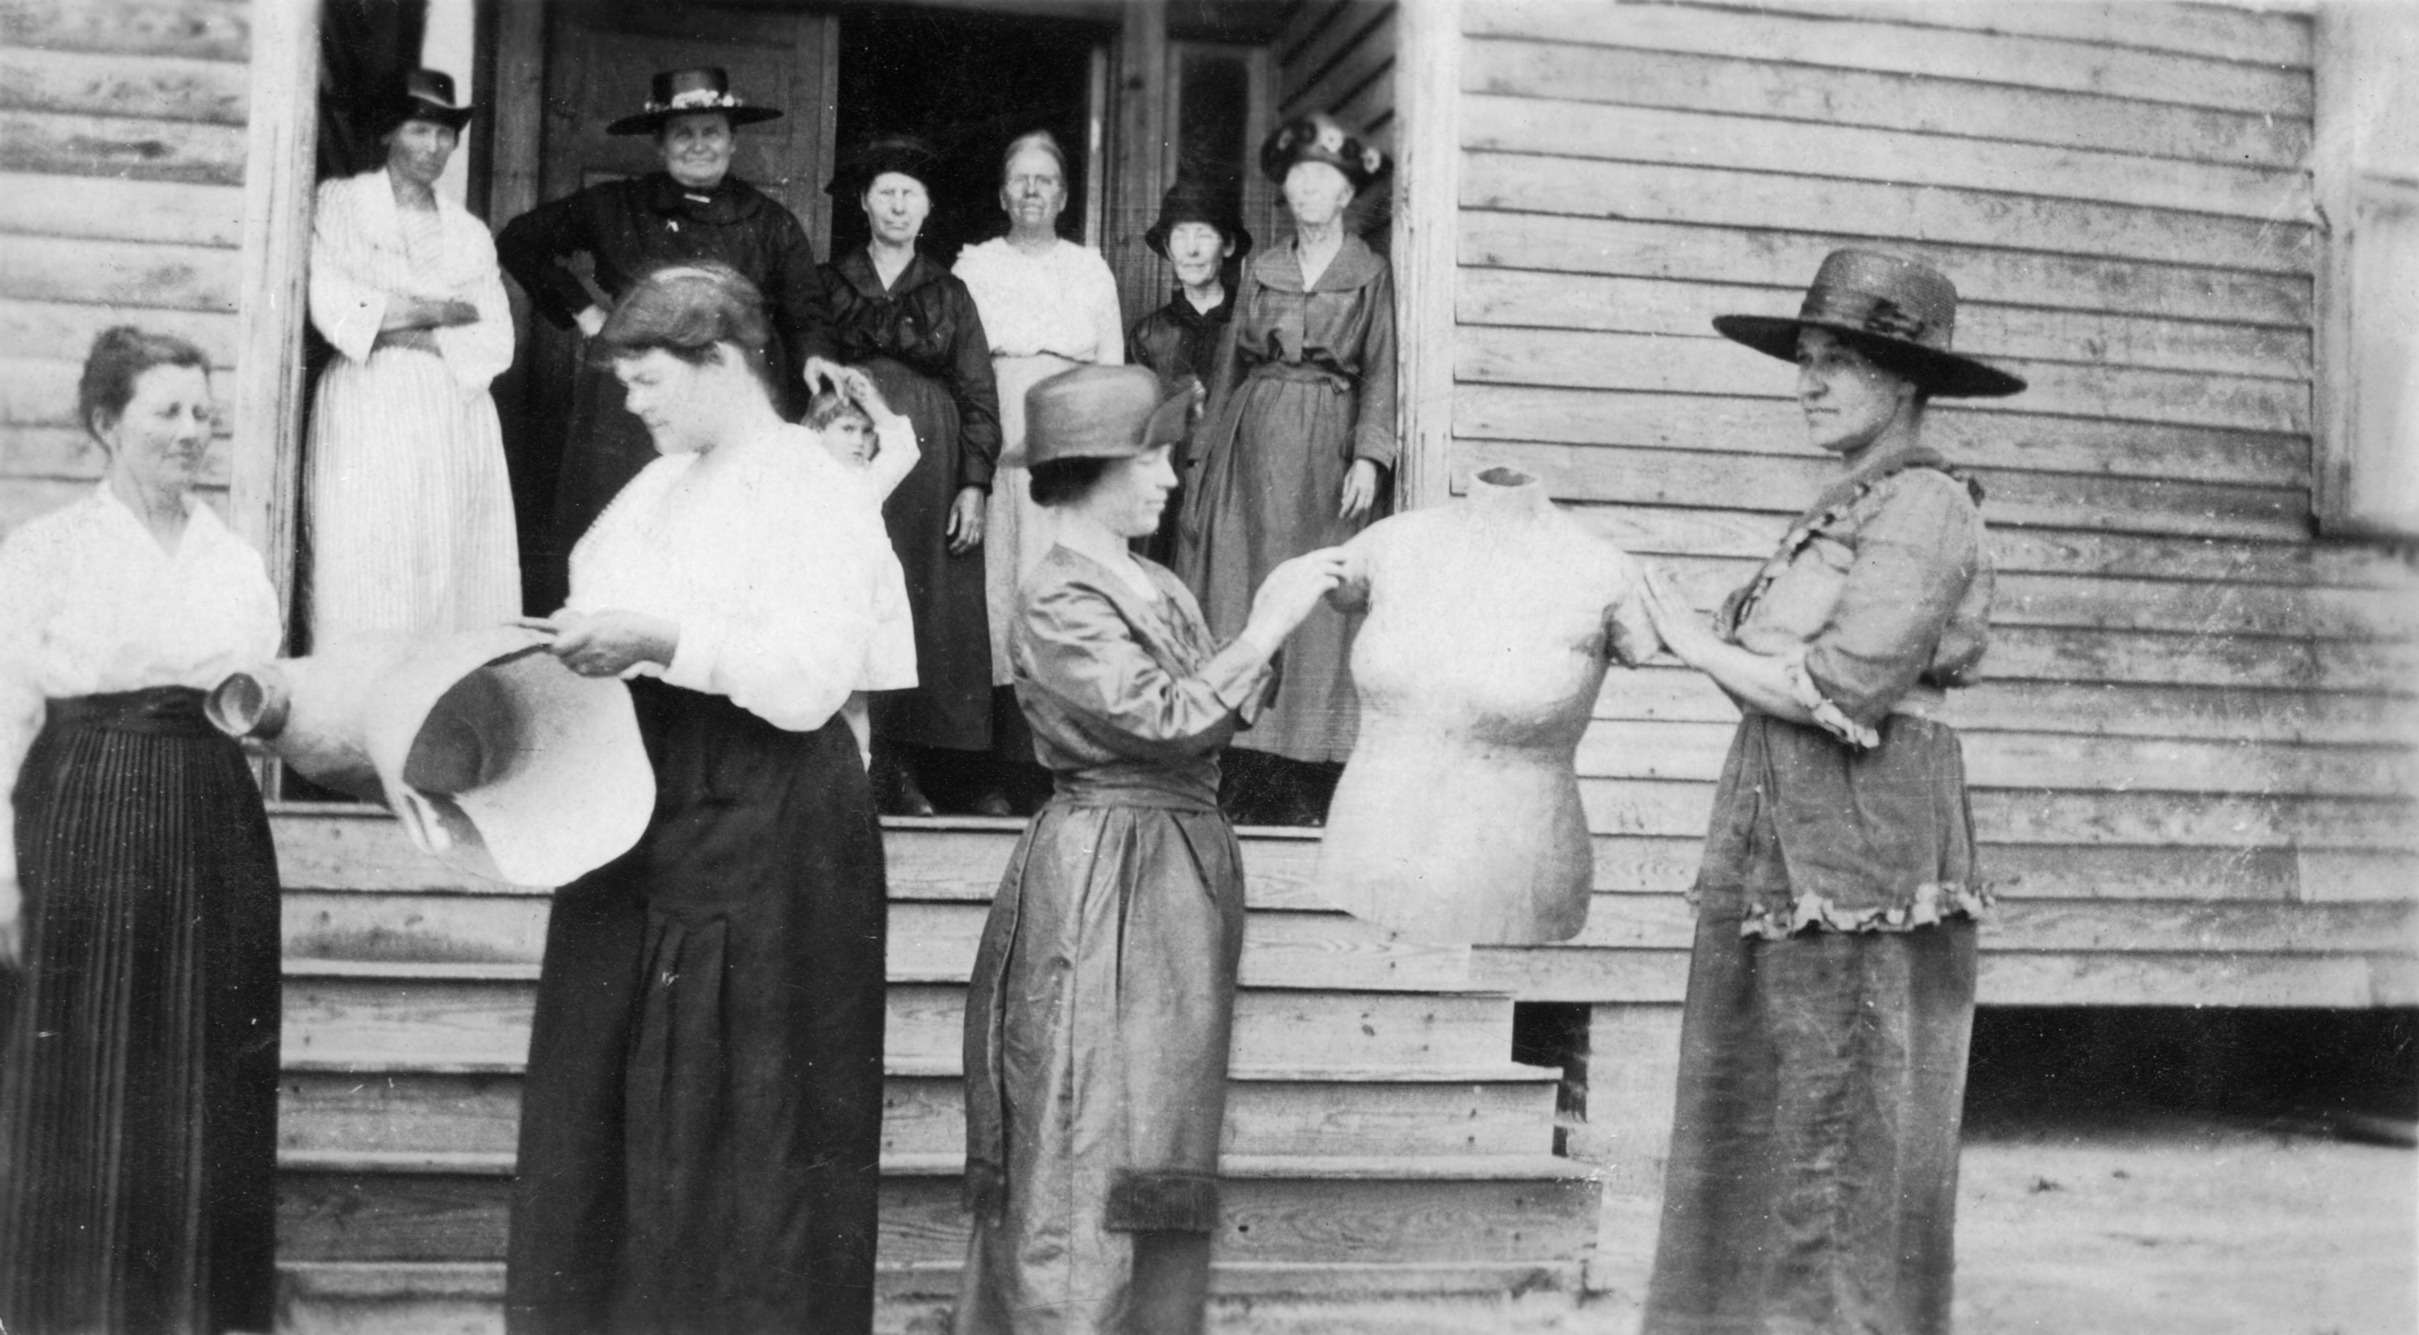 Clarendon Women's Club of Columbus County in the southeastern district, holding their dress molds